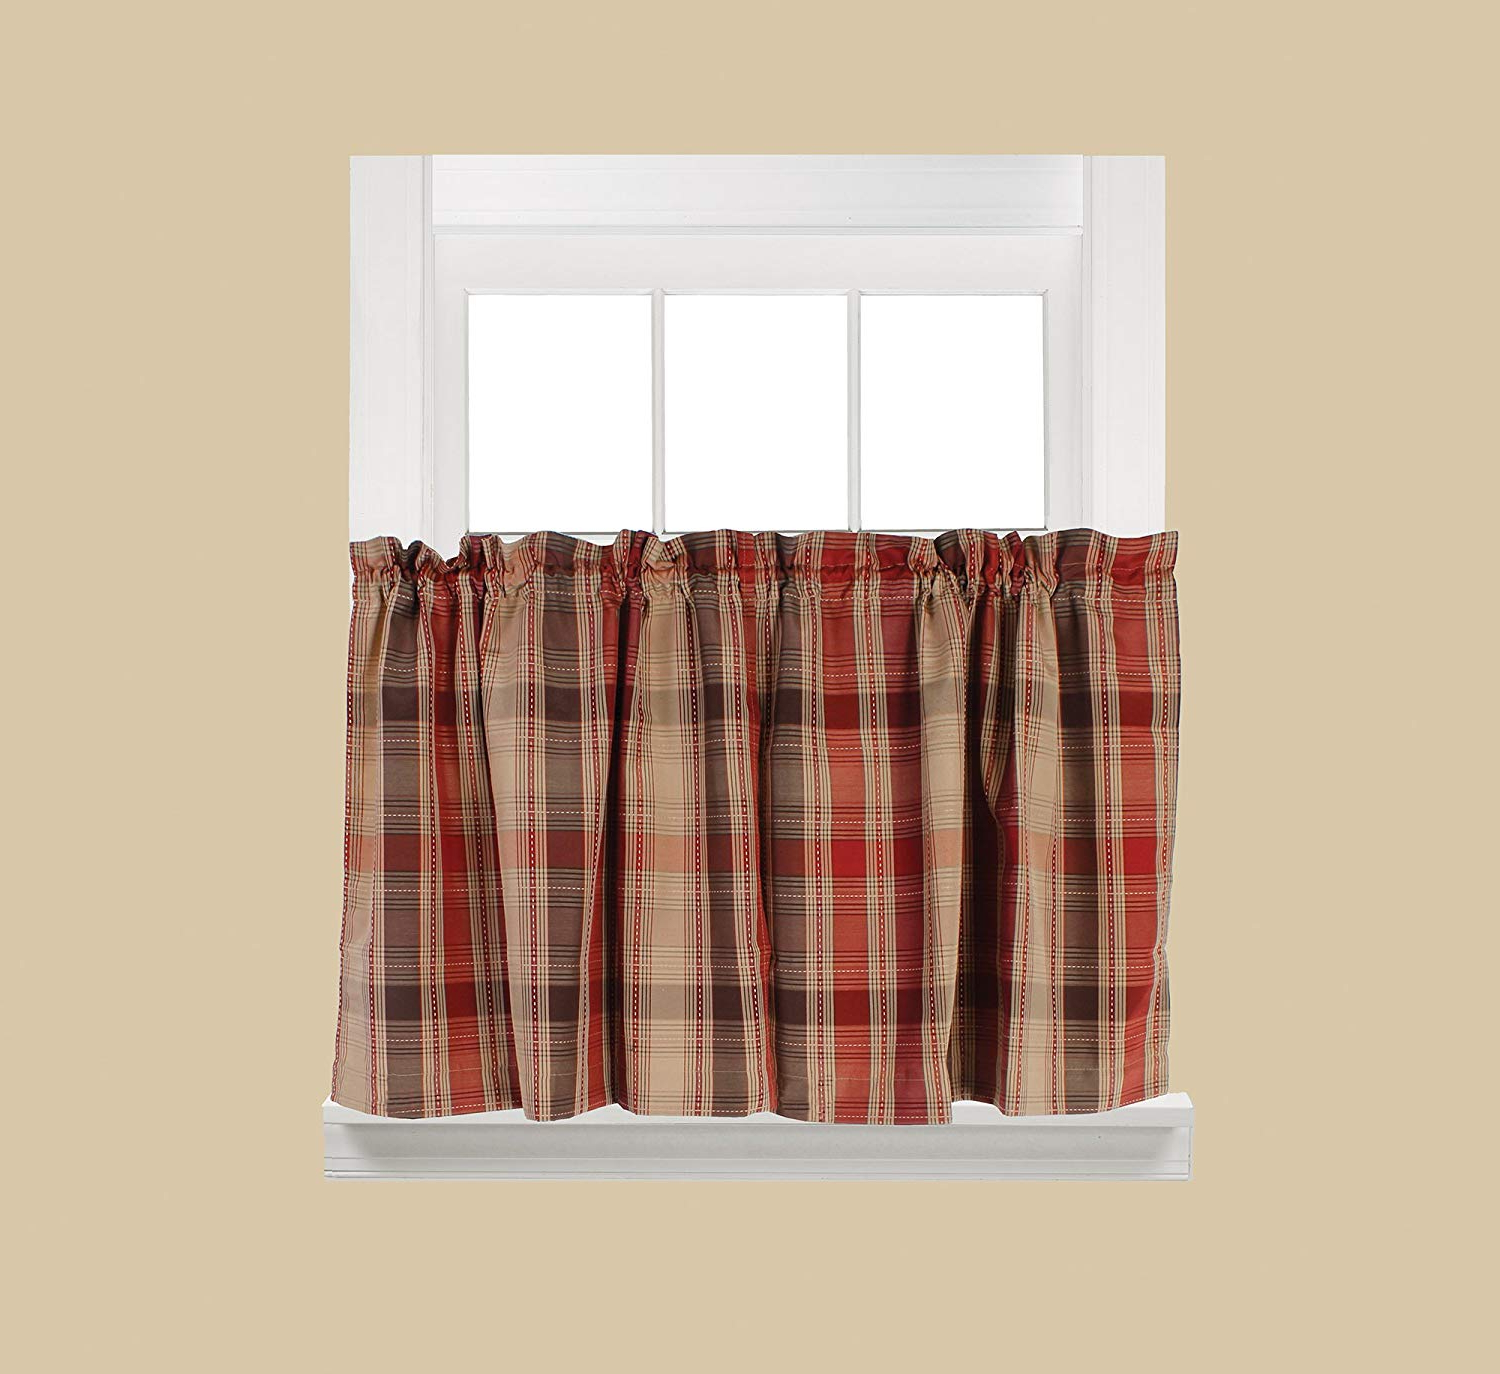 Latest Tranquility Curtain Tier Pairs Pertaining To Amazon: Skl Homesaturday Knight Ltd (View 7 of 20)